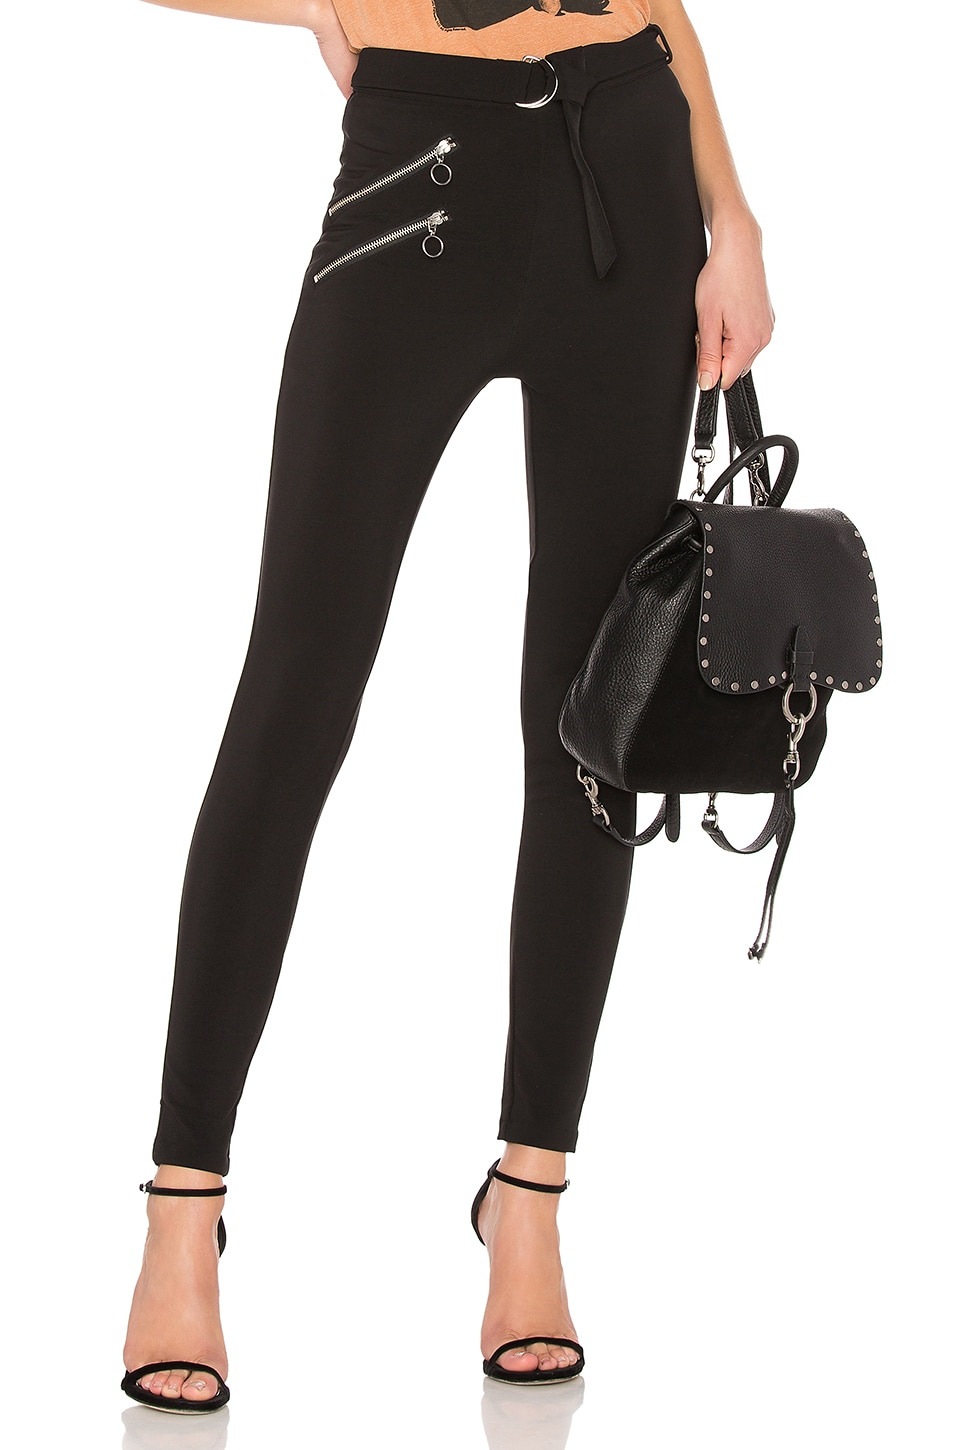 Lovers + Friends x REVOLVE Give Me a Ring Legging in Black